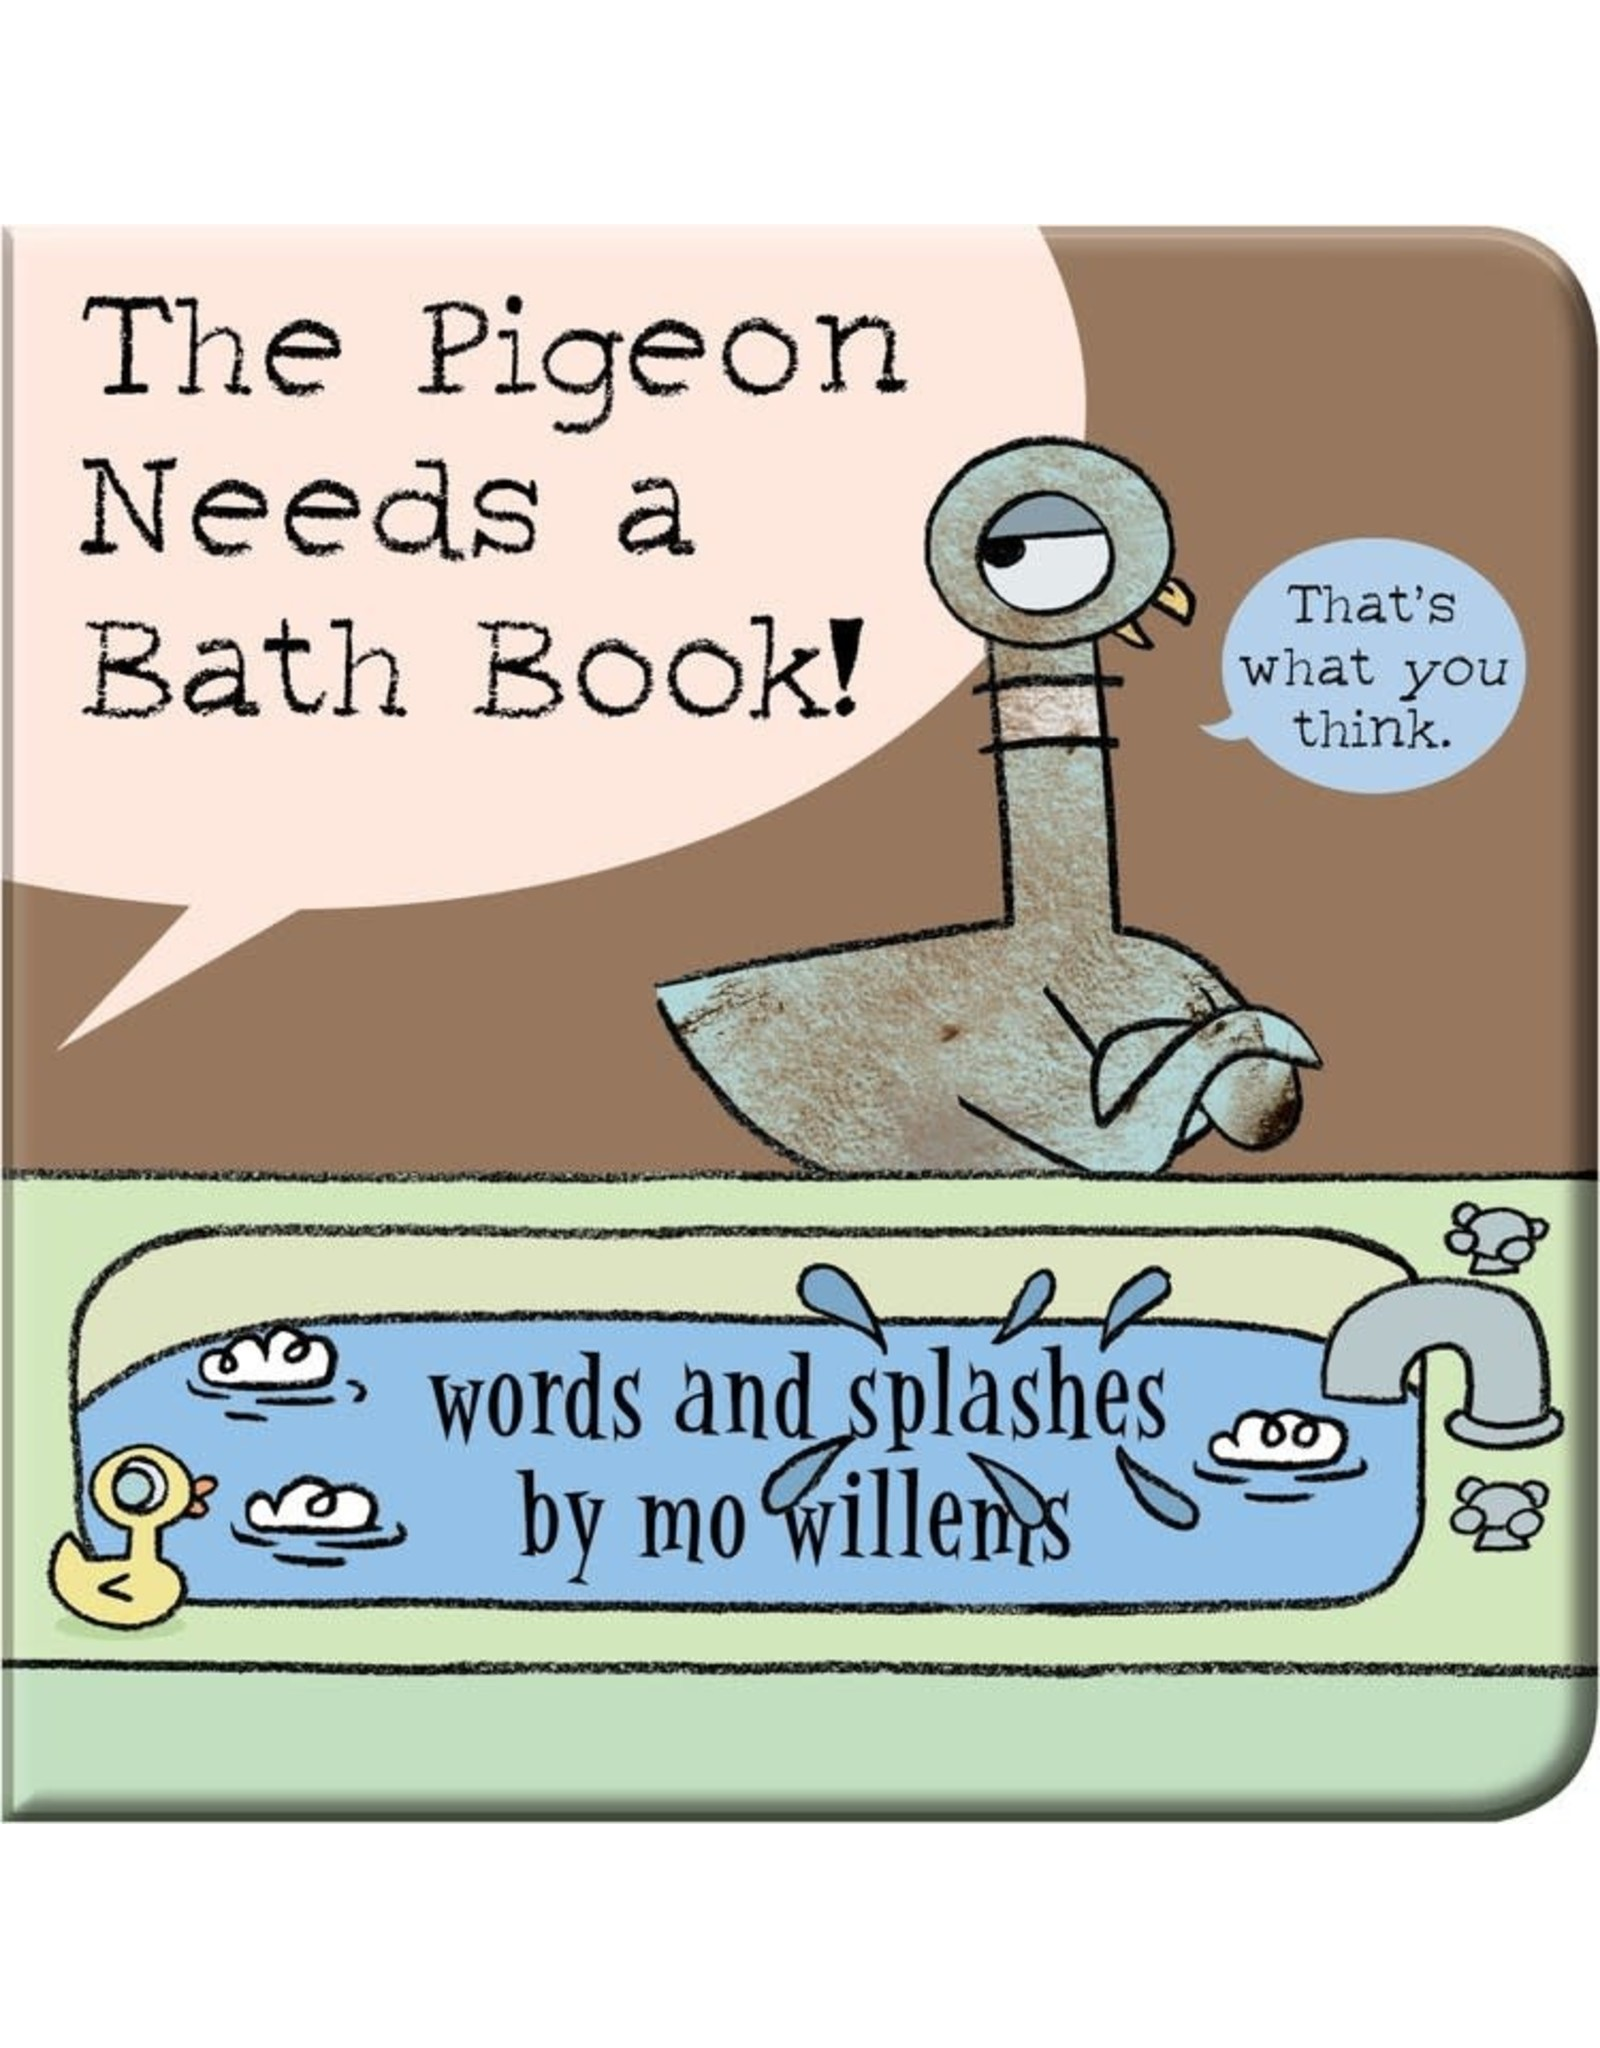 Hyperion Books The Pigeon Needs a Bath Book!